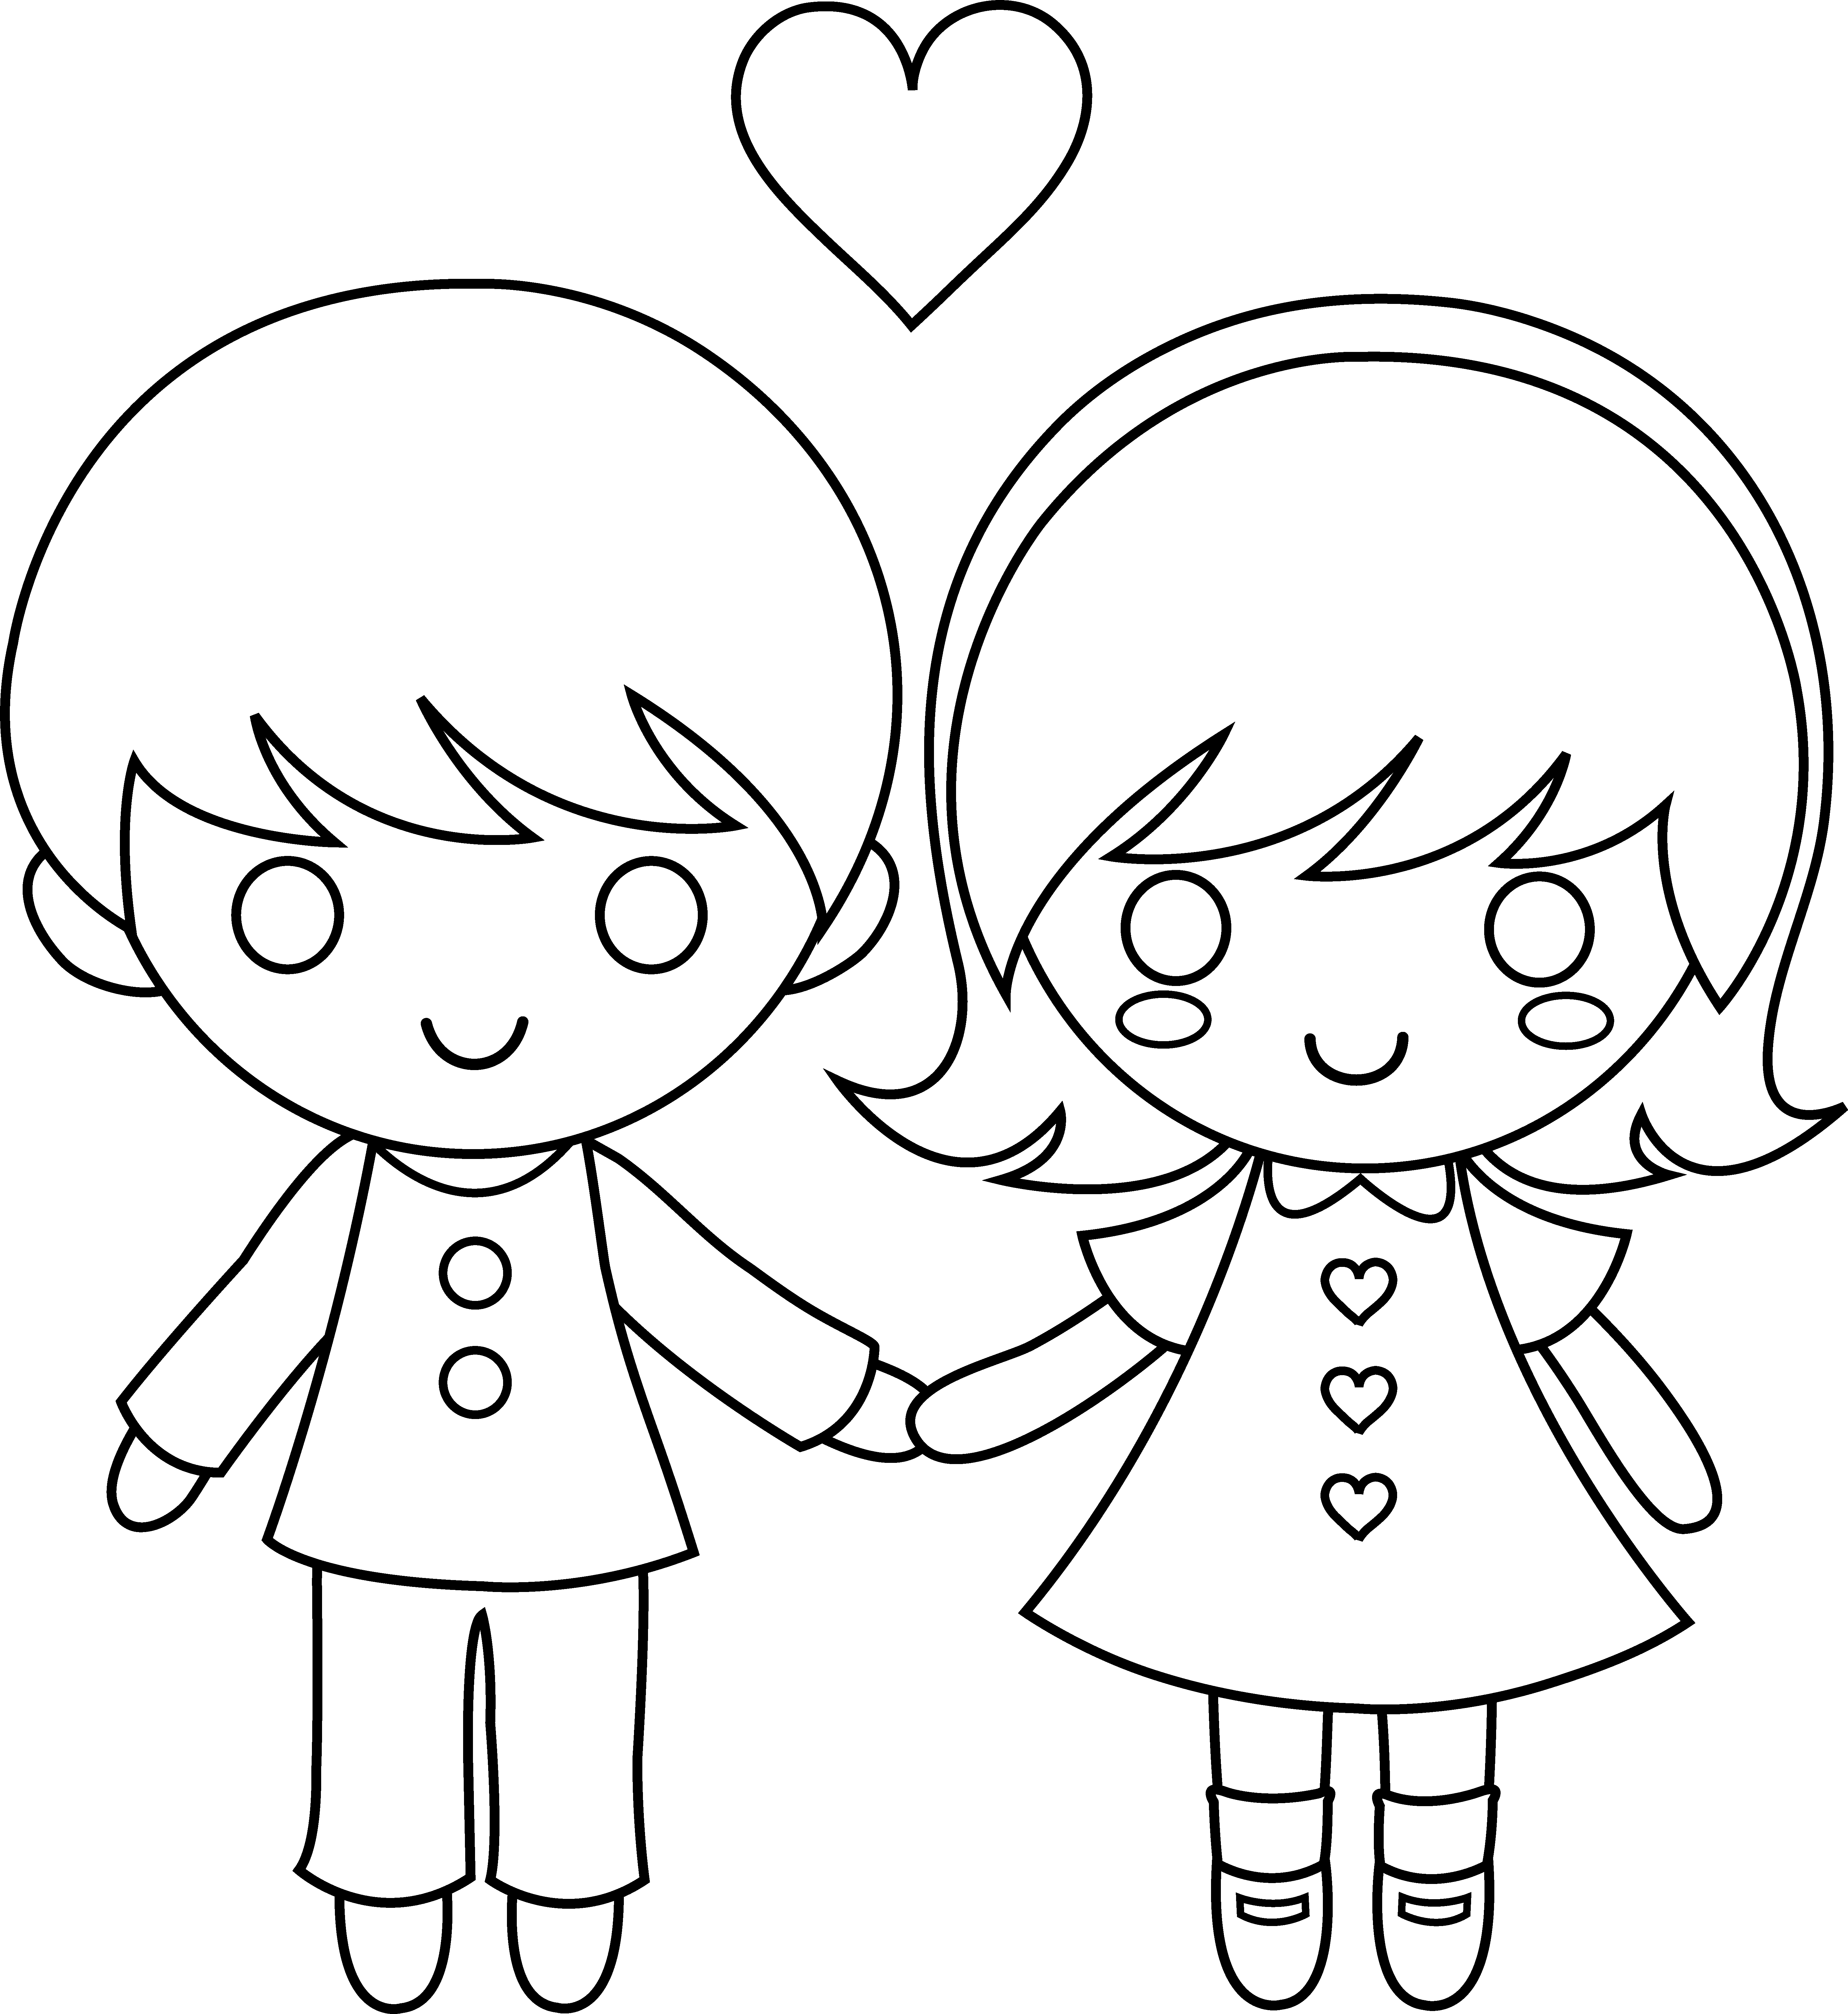 coloring picture of girl american girl coloring pages best coloring pages for kids picture of coloring girl